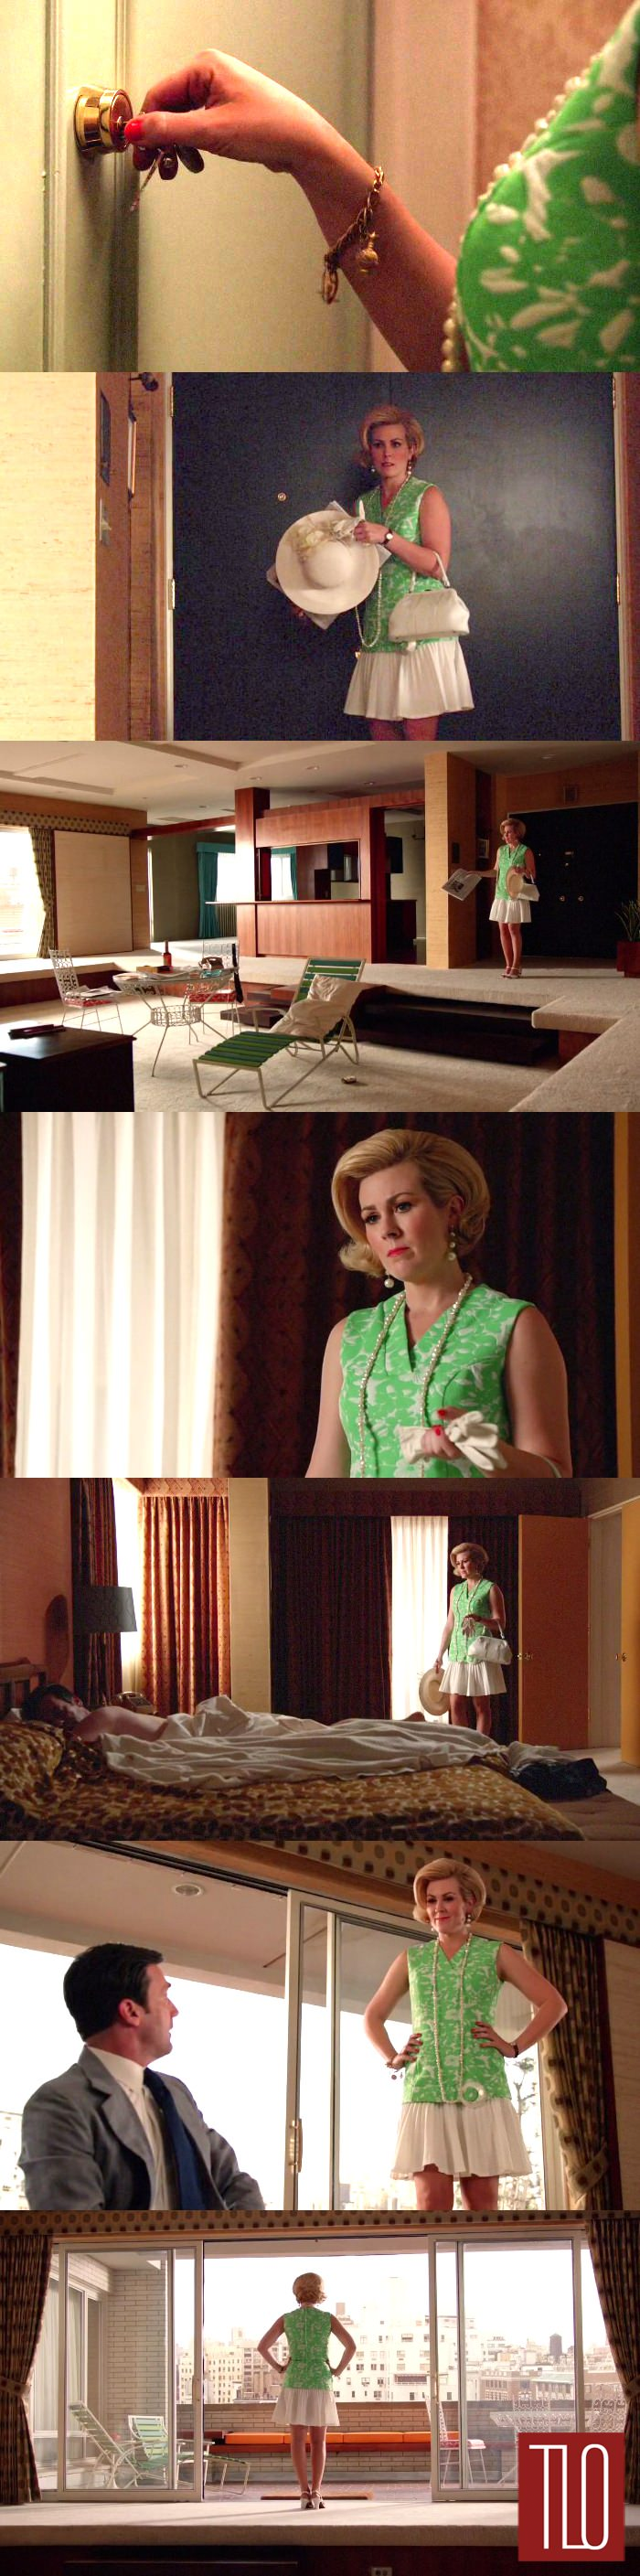 Mad-Men-Television-Mad-Style-Episode-New-Business-Tom-Lorenzo-Site-TLO (1)